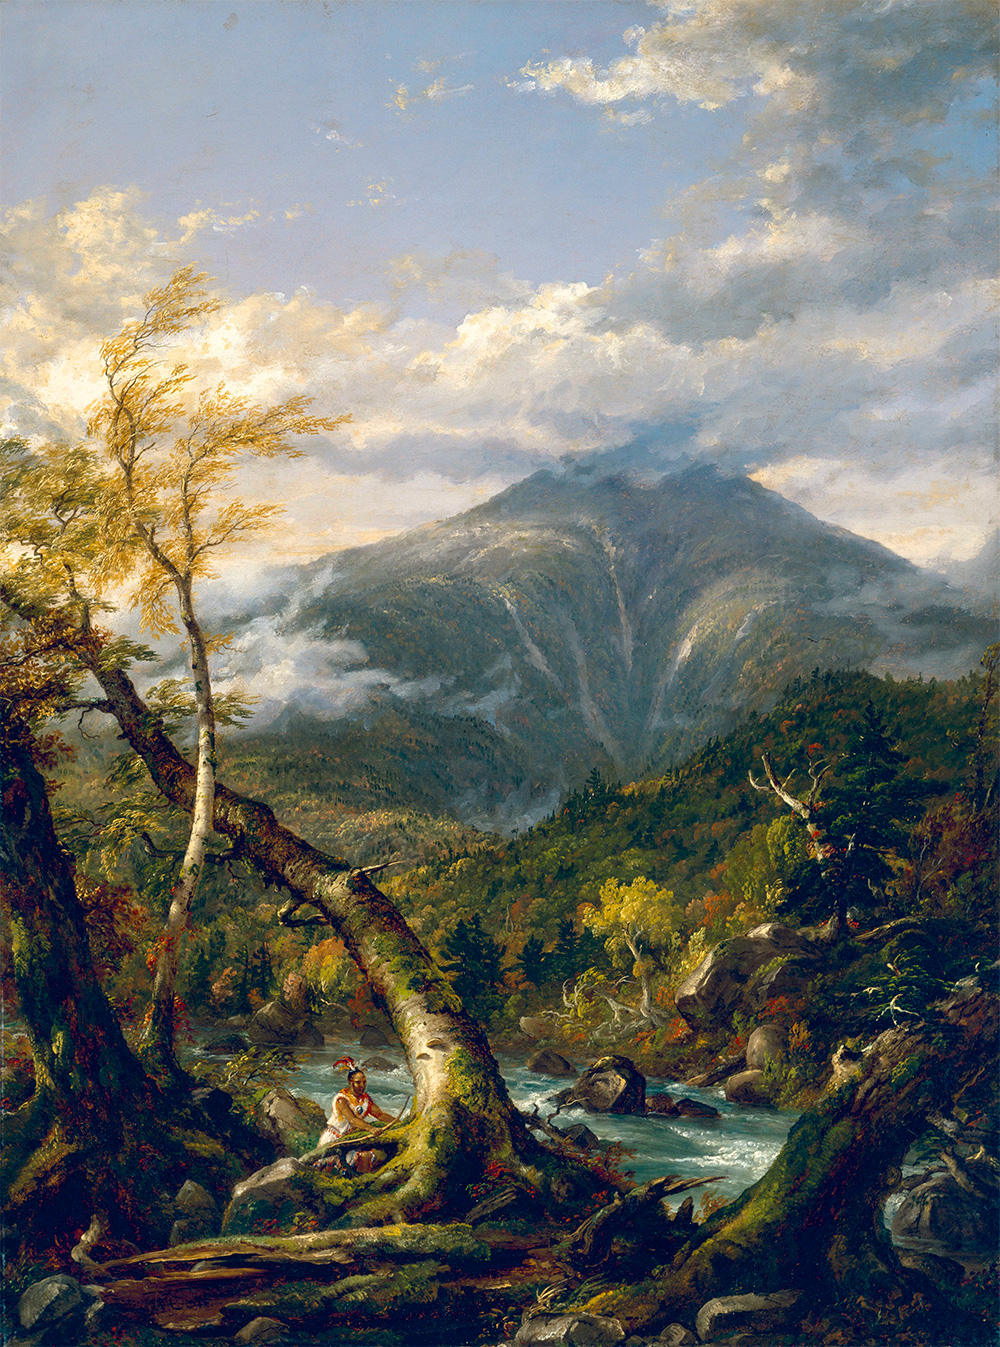 """thomas cole essay on american scenery analysis Thomas cole's """"essay on american scenery"""" suggests that he paints natural scenes to experience a particular emotional response—one he describes variably as """"a calm religious tone,"""" """"tranquility and peace,"""" and a feeling """"as though a great void had been filled in our minds"""" (100, 103, 105)."""